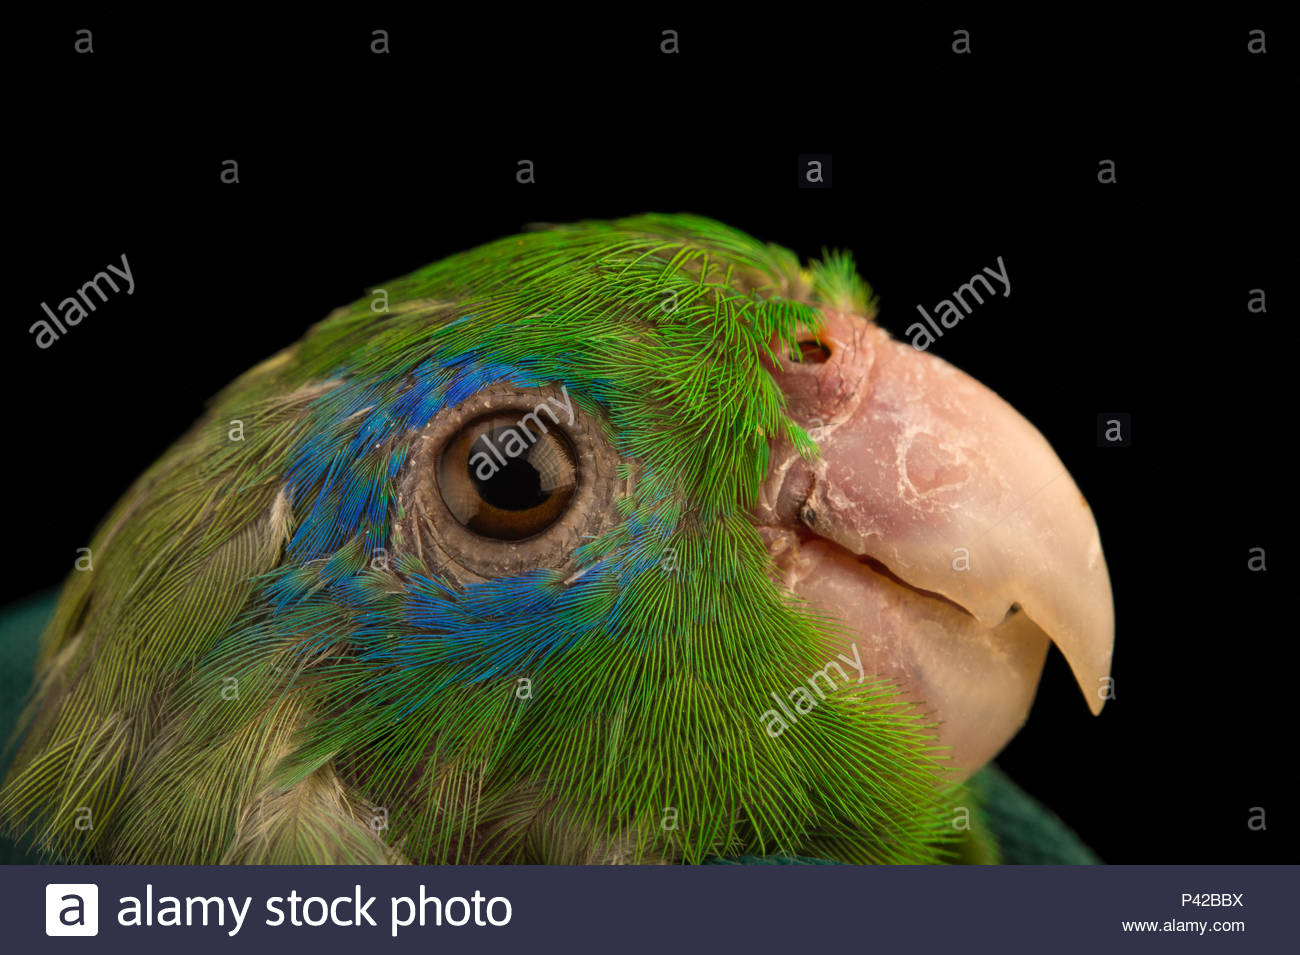 A male spectacled parrotlet, Forpus conspicillatus, at Piscilago Zoo. - Stock Image